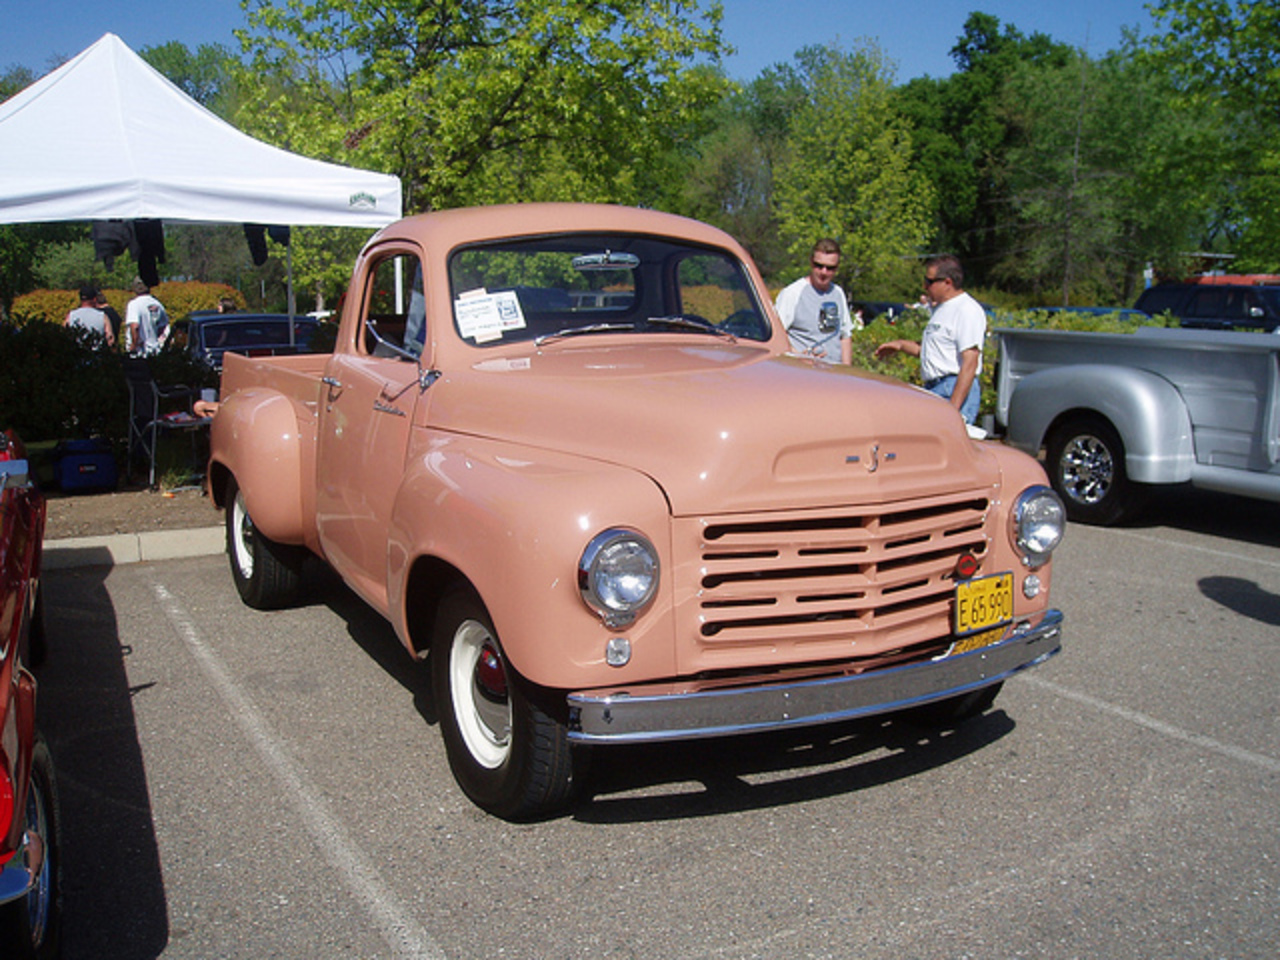 Studebaker R Series Truck: Photo #